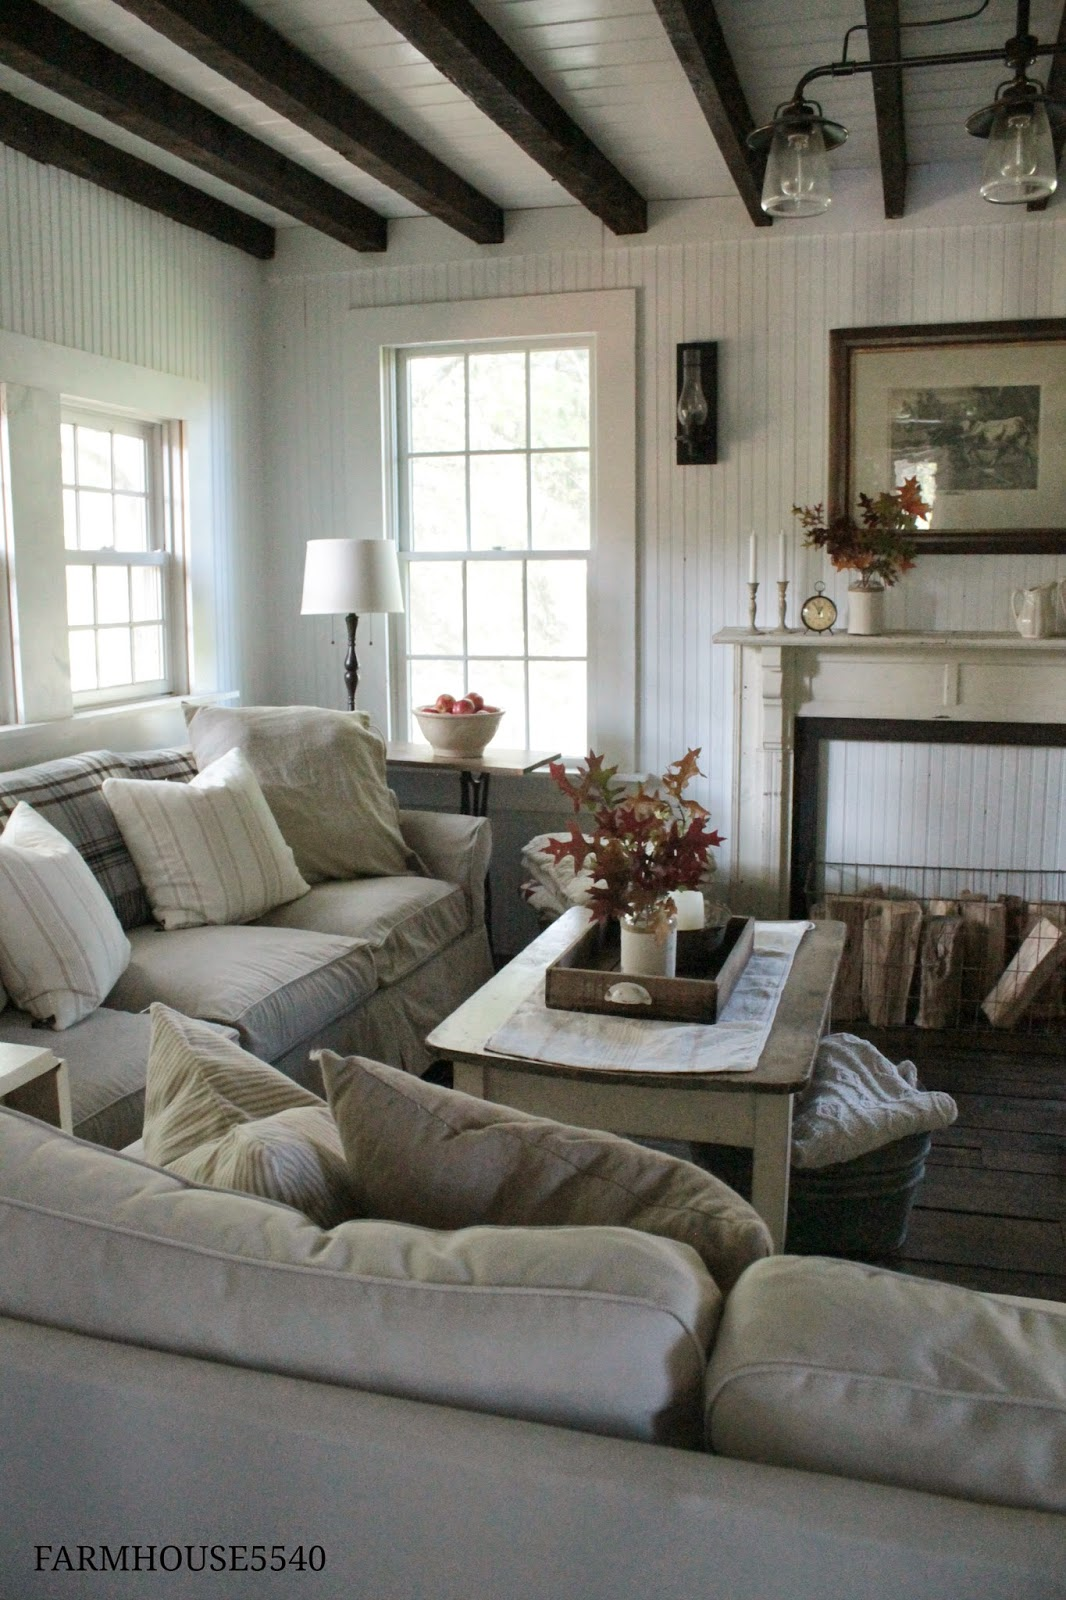 Family Living Room Designs: FARMHOUSE 5540: Autumn In The Family Room